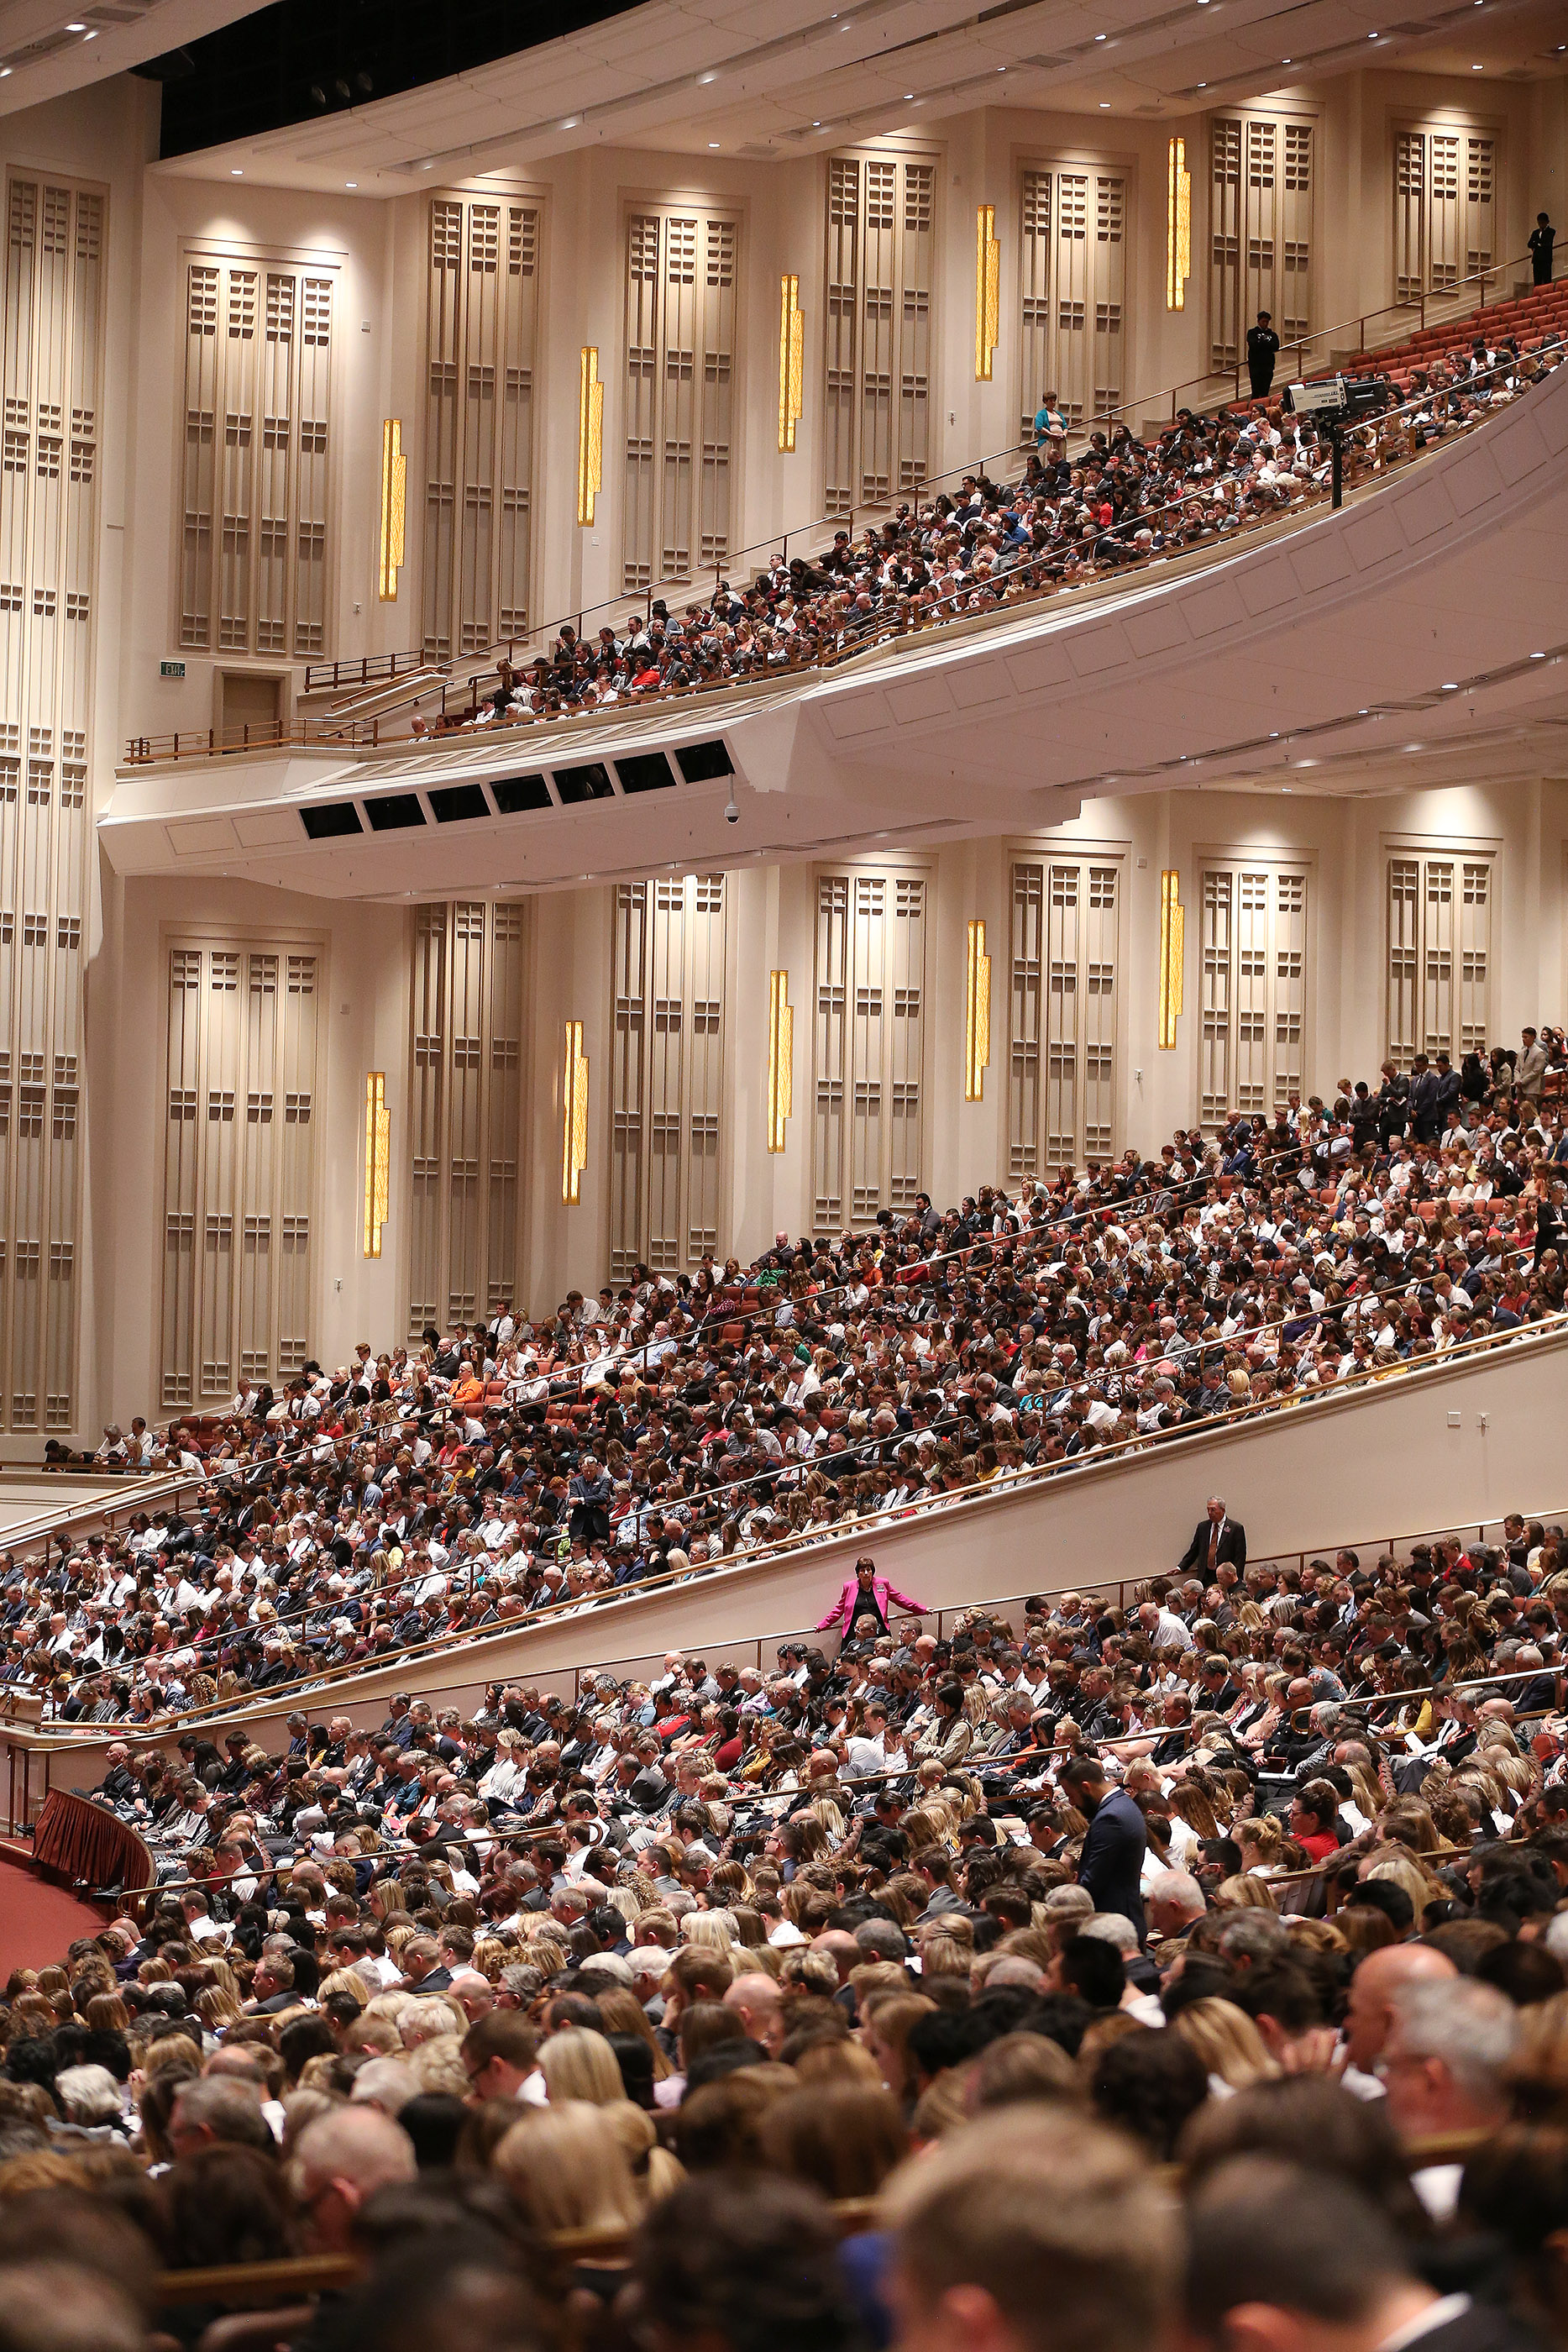 Attendees listen during the Sunday afternoon session of the 188th Semiannual General Conference of The Church of Jesus Christ of Latter-day Saints in the Conference Center in Salt Lake City on Sunday, Oct. 7, 2018.